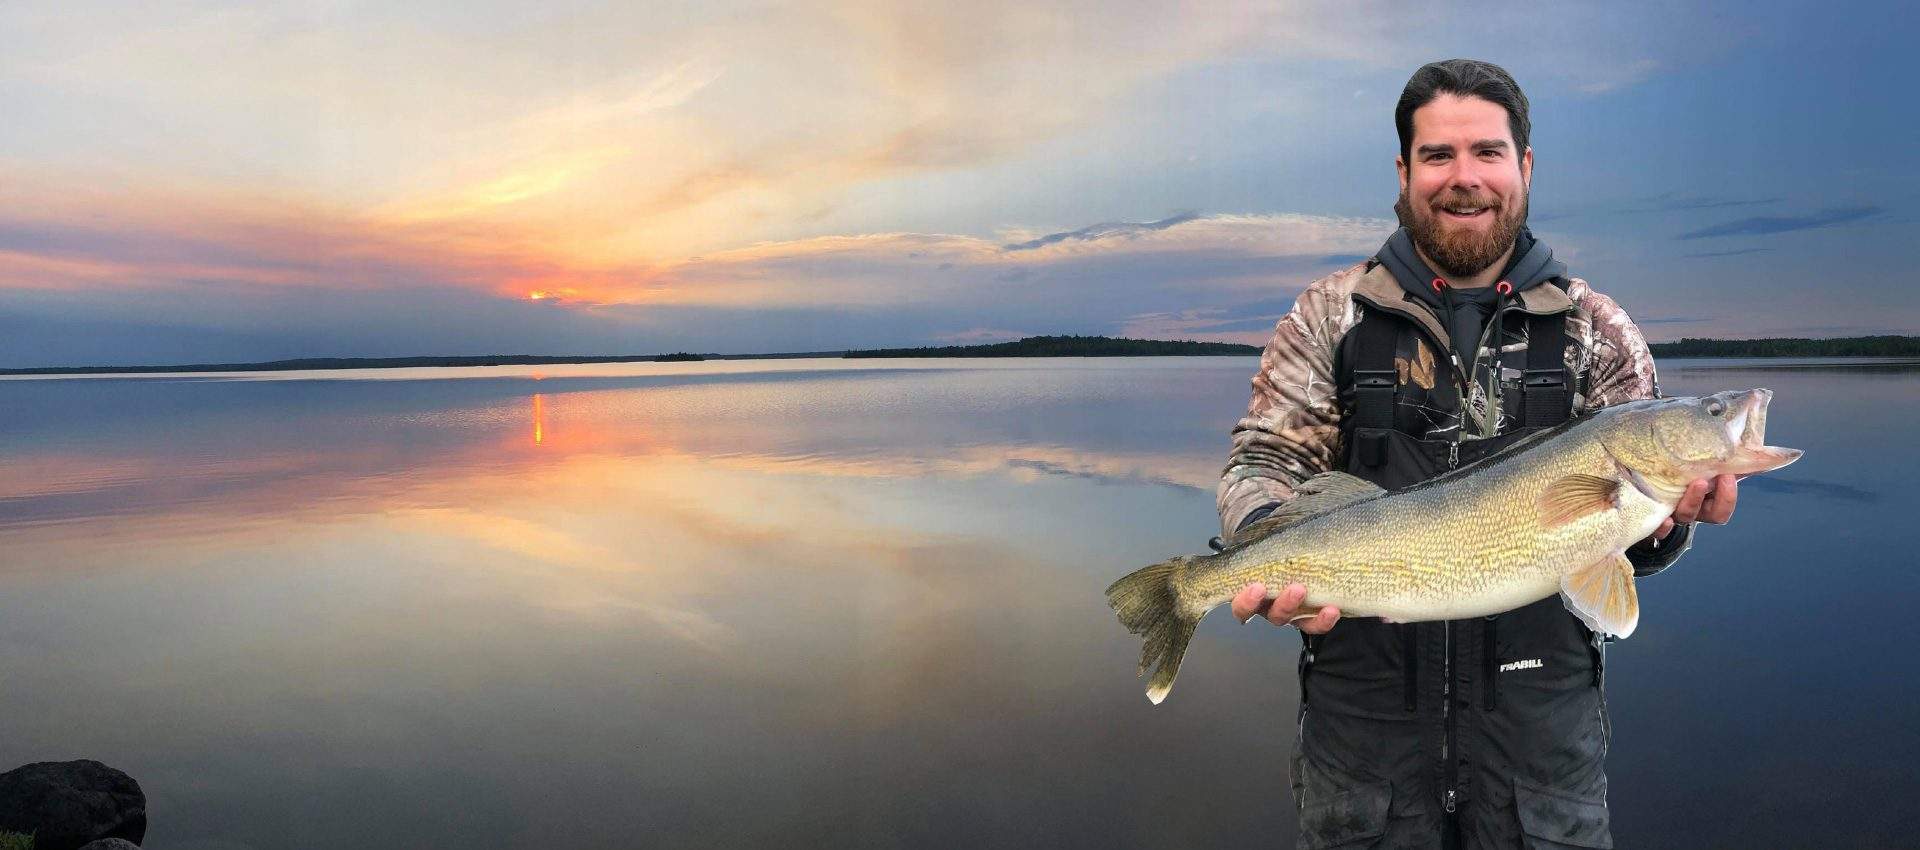 Fisherman Guest With Trophy Walleye Catch 1 Aspect Ratio 1920 850